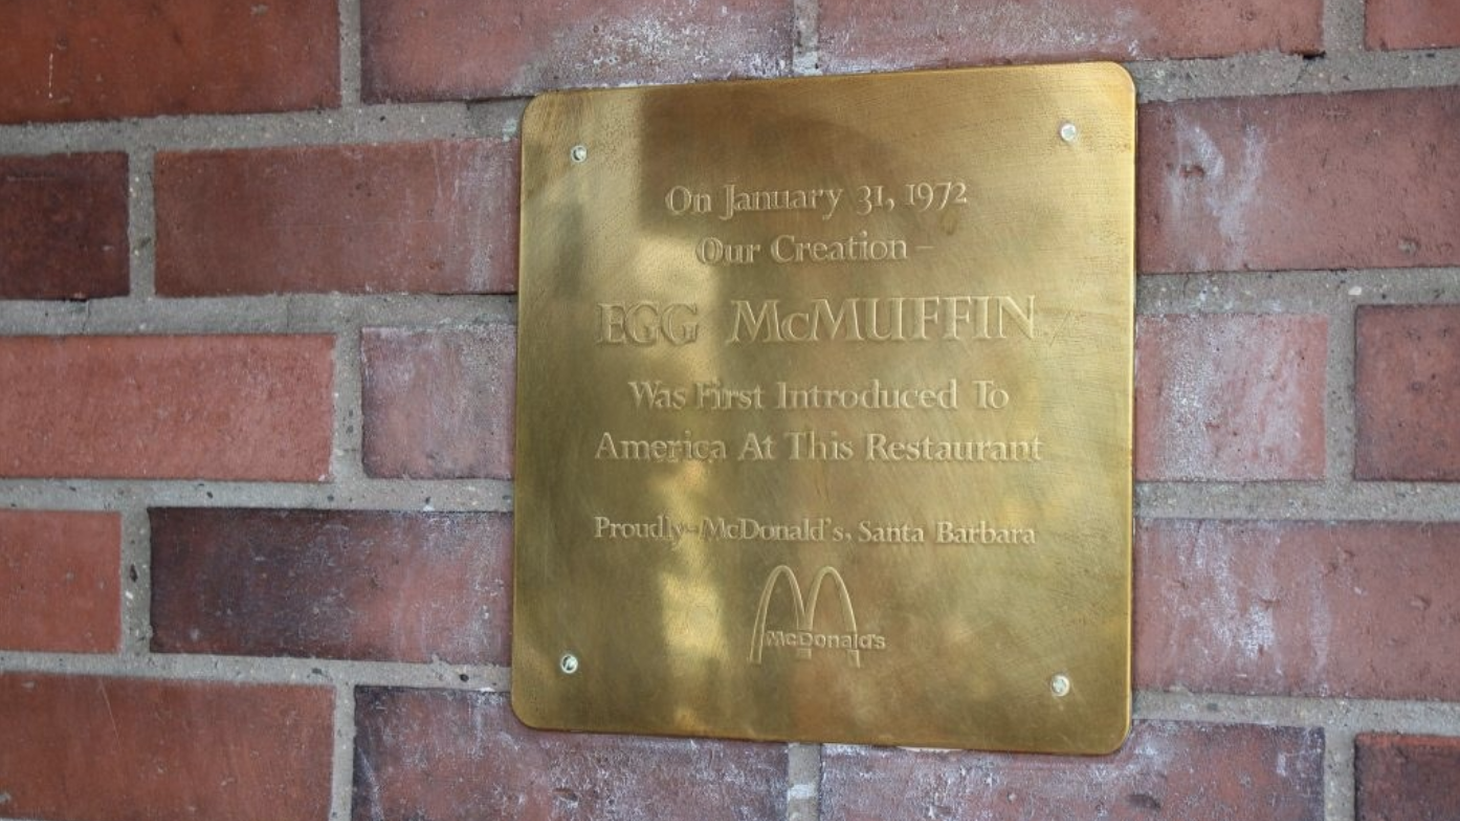 You can find this plaque honoring Herb Peterson's invention at the McDonald's at 3940 State Street.